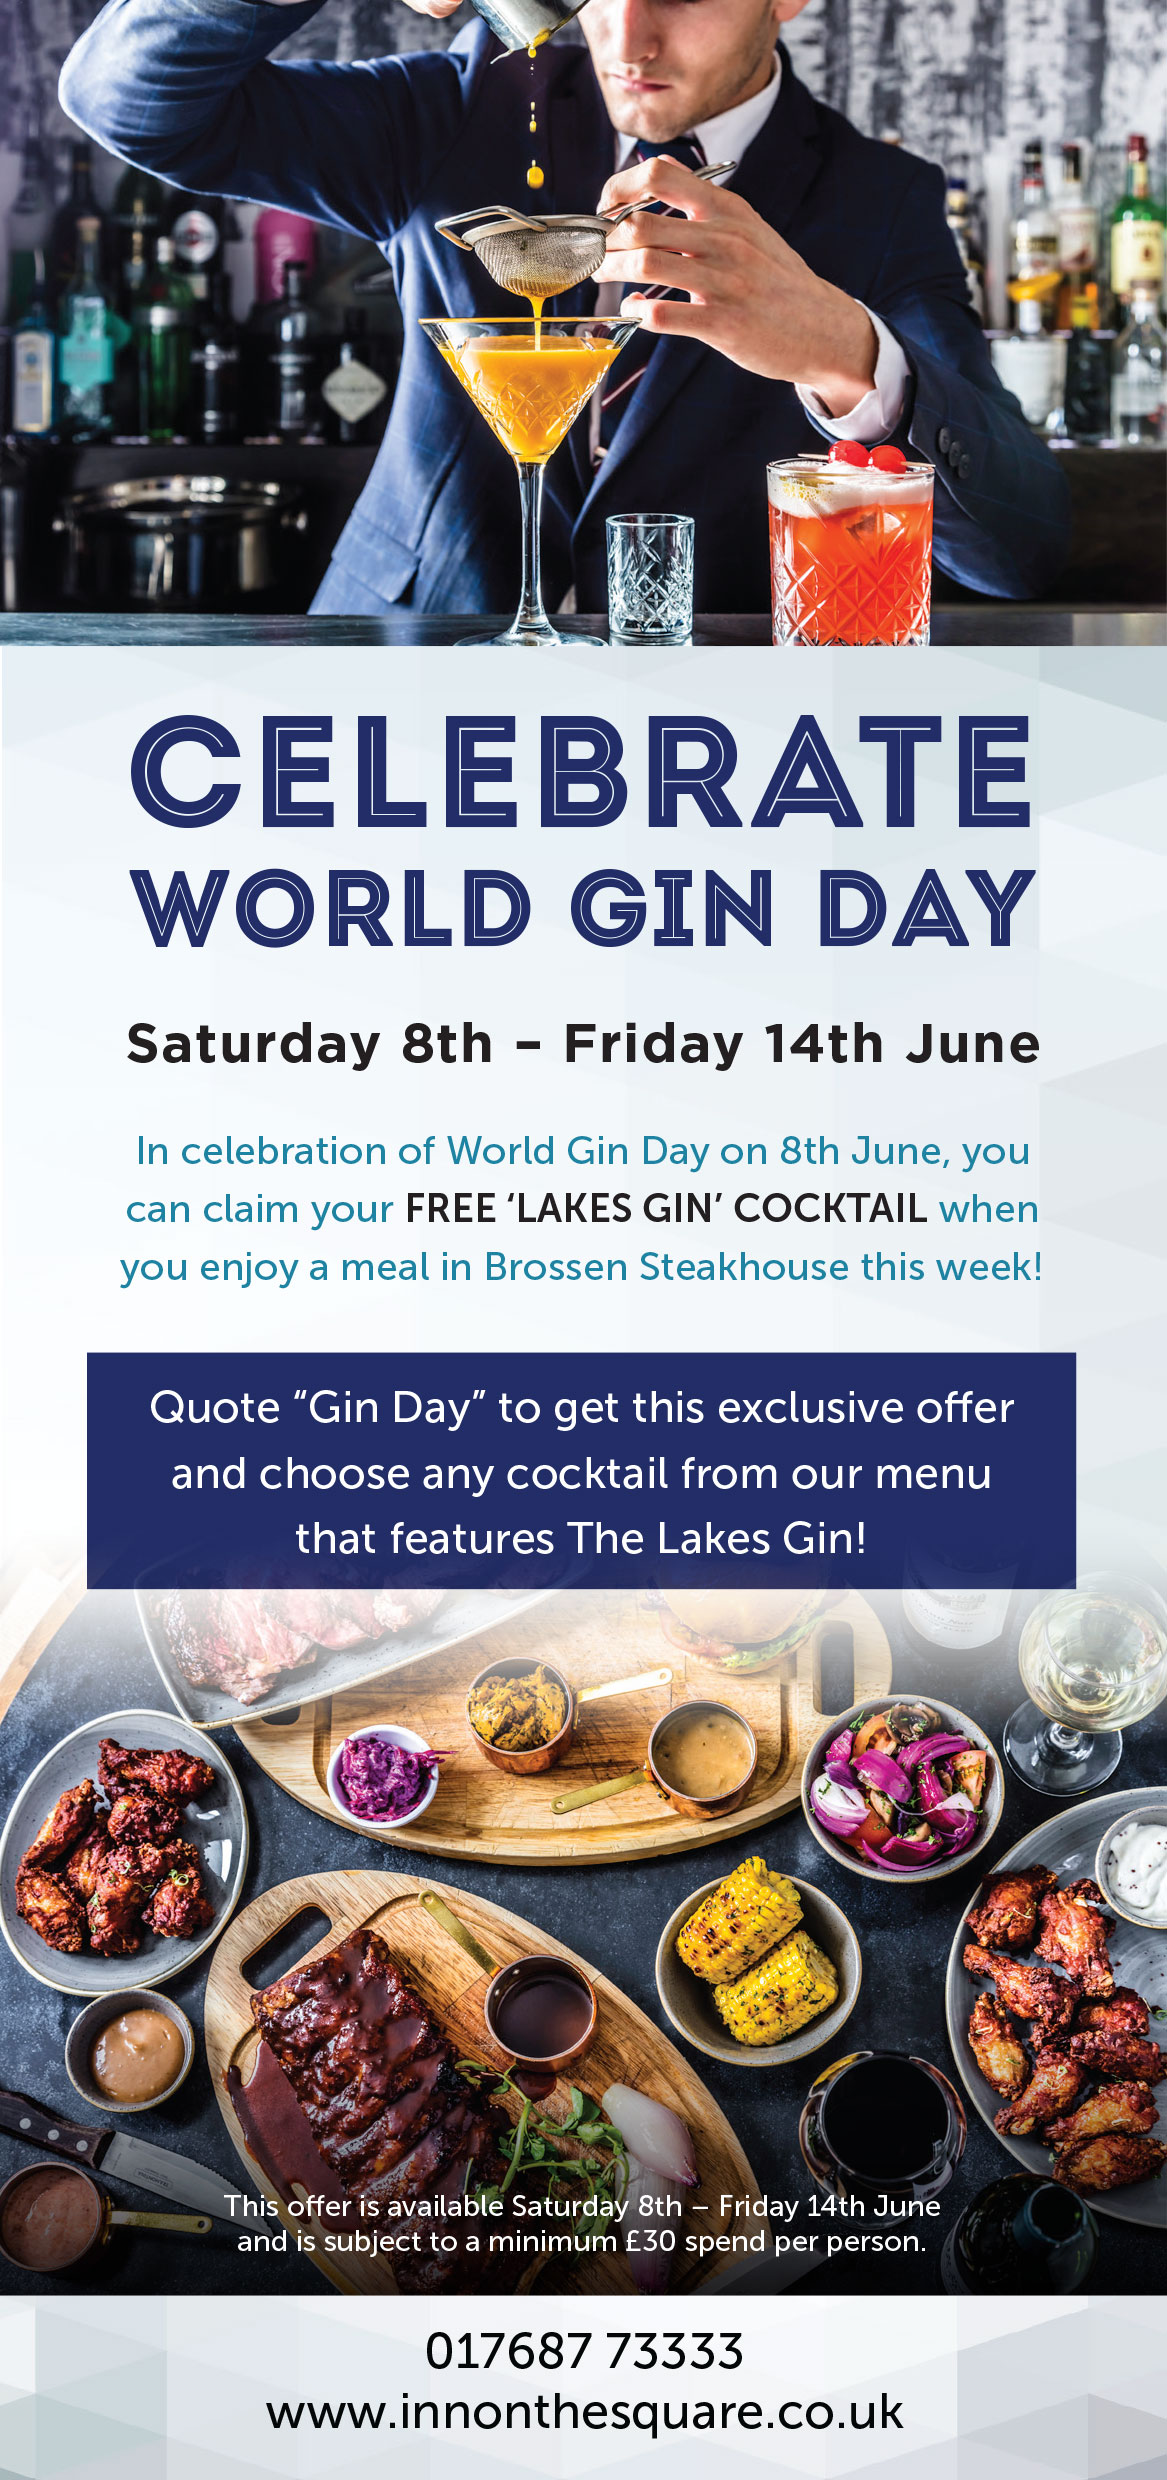 Celebrate World Gin Day with a FREE gin cocktail at Inn on the Square!